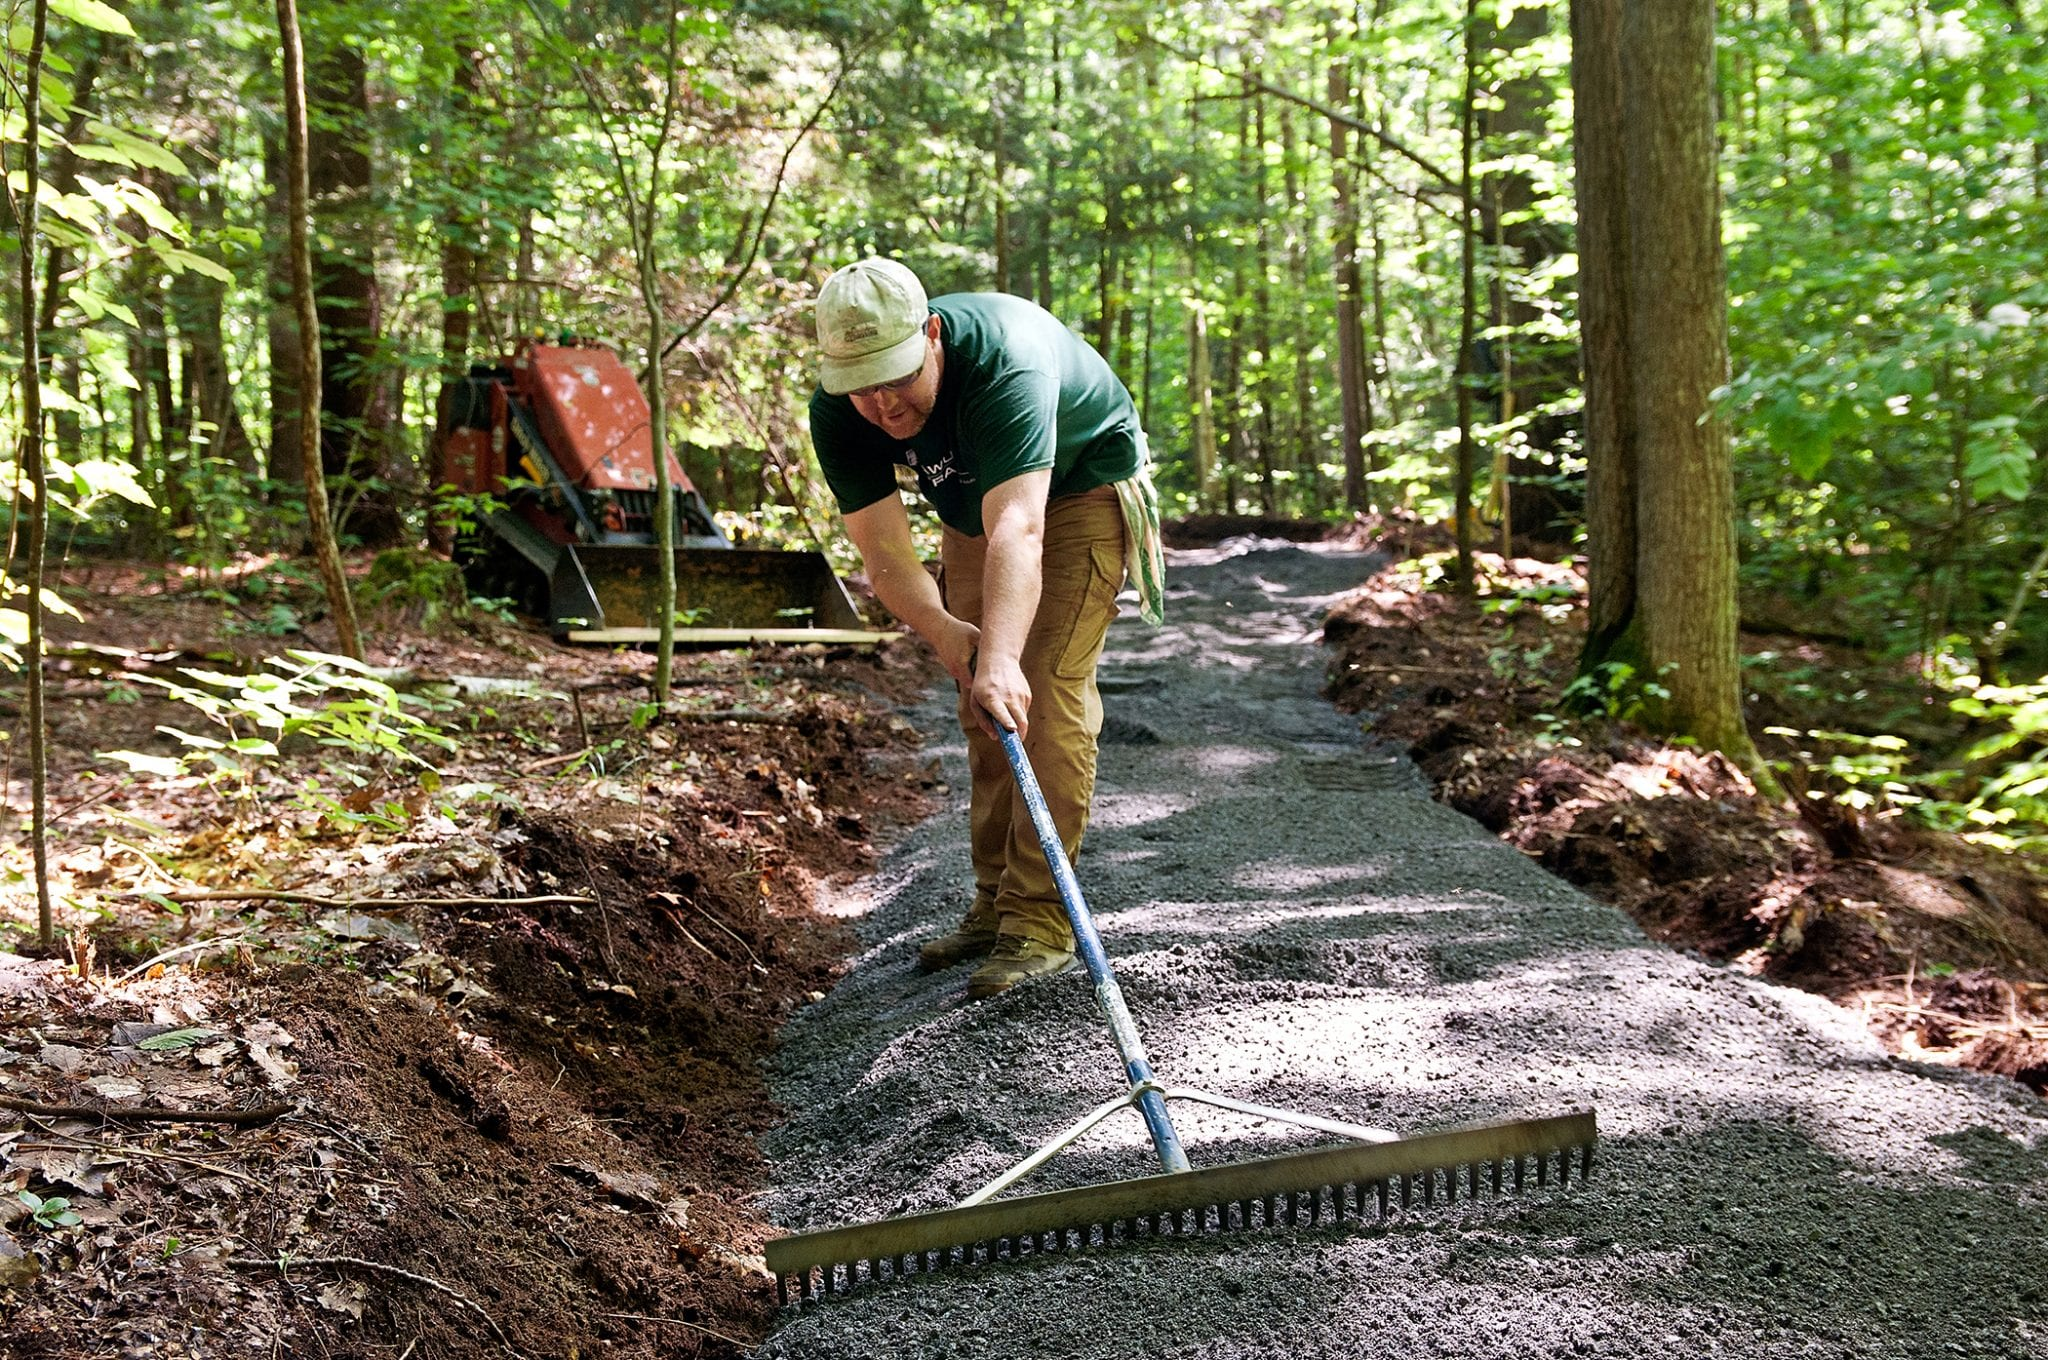 Kevin Simpson, a member of the Tahawus Trails LLC professional trail crew building a new universal access trail at The Nature Conservancy's Boquet River Nature Preserve in Willsboro,